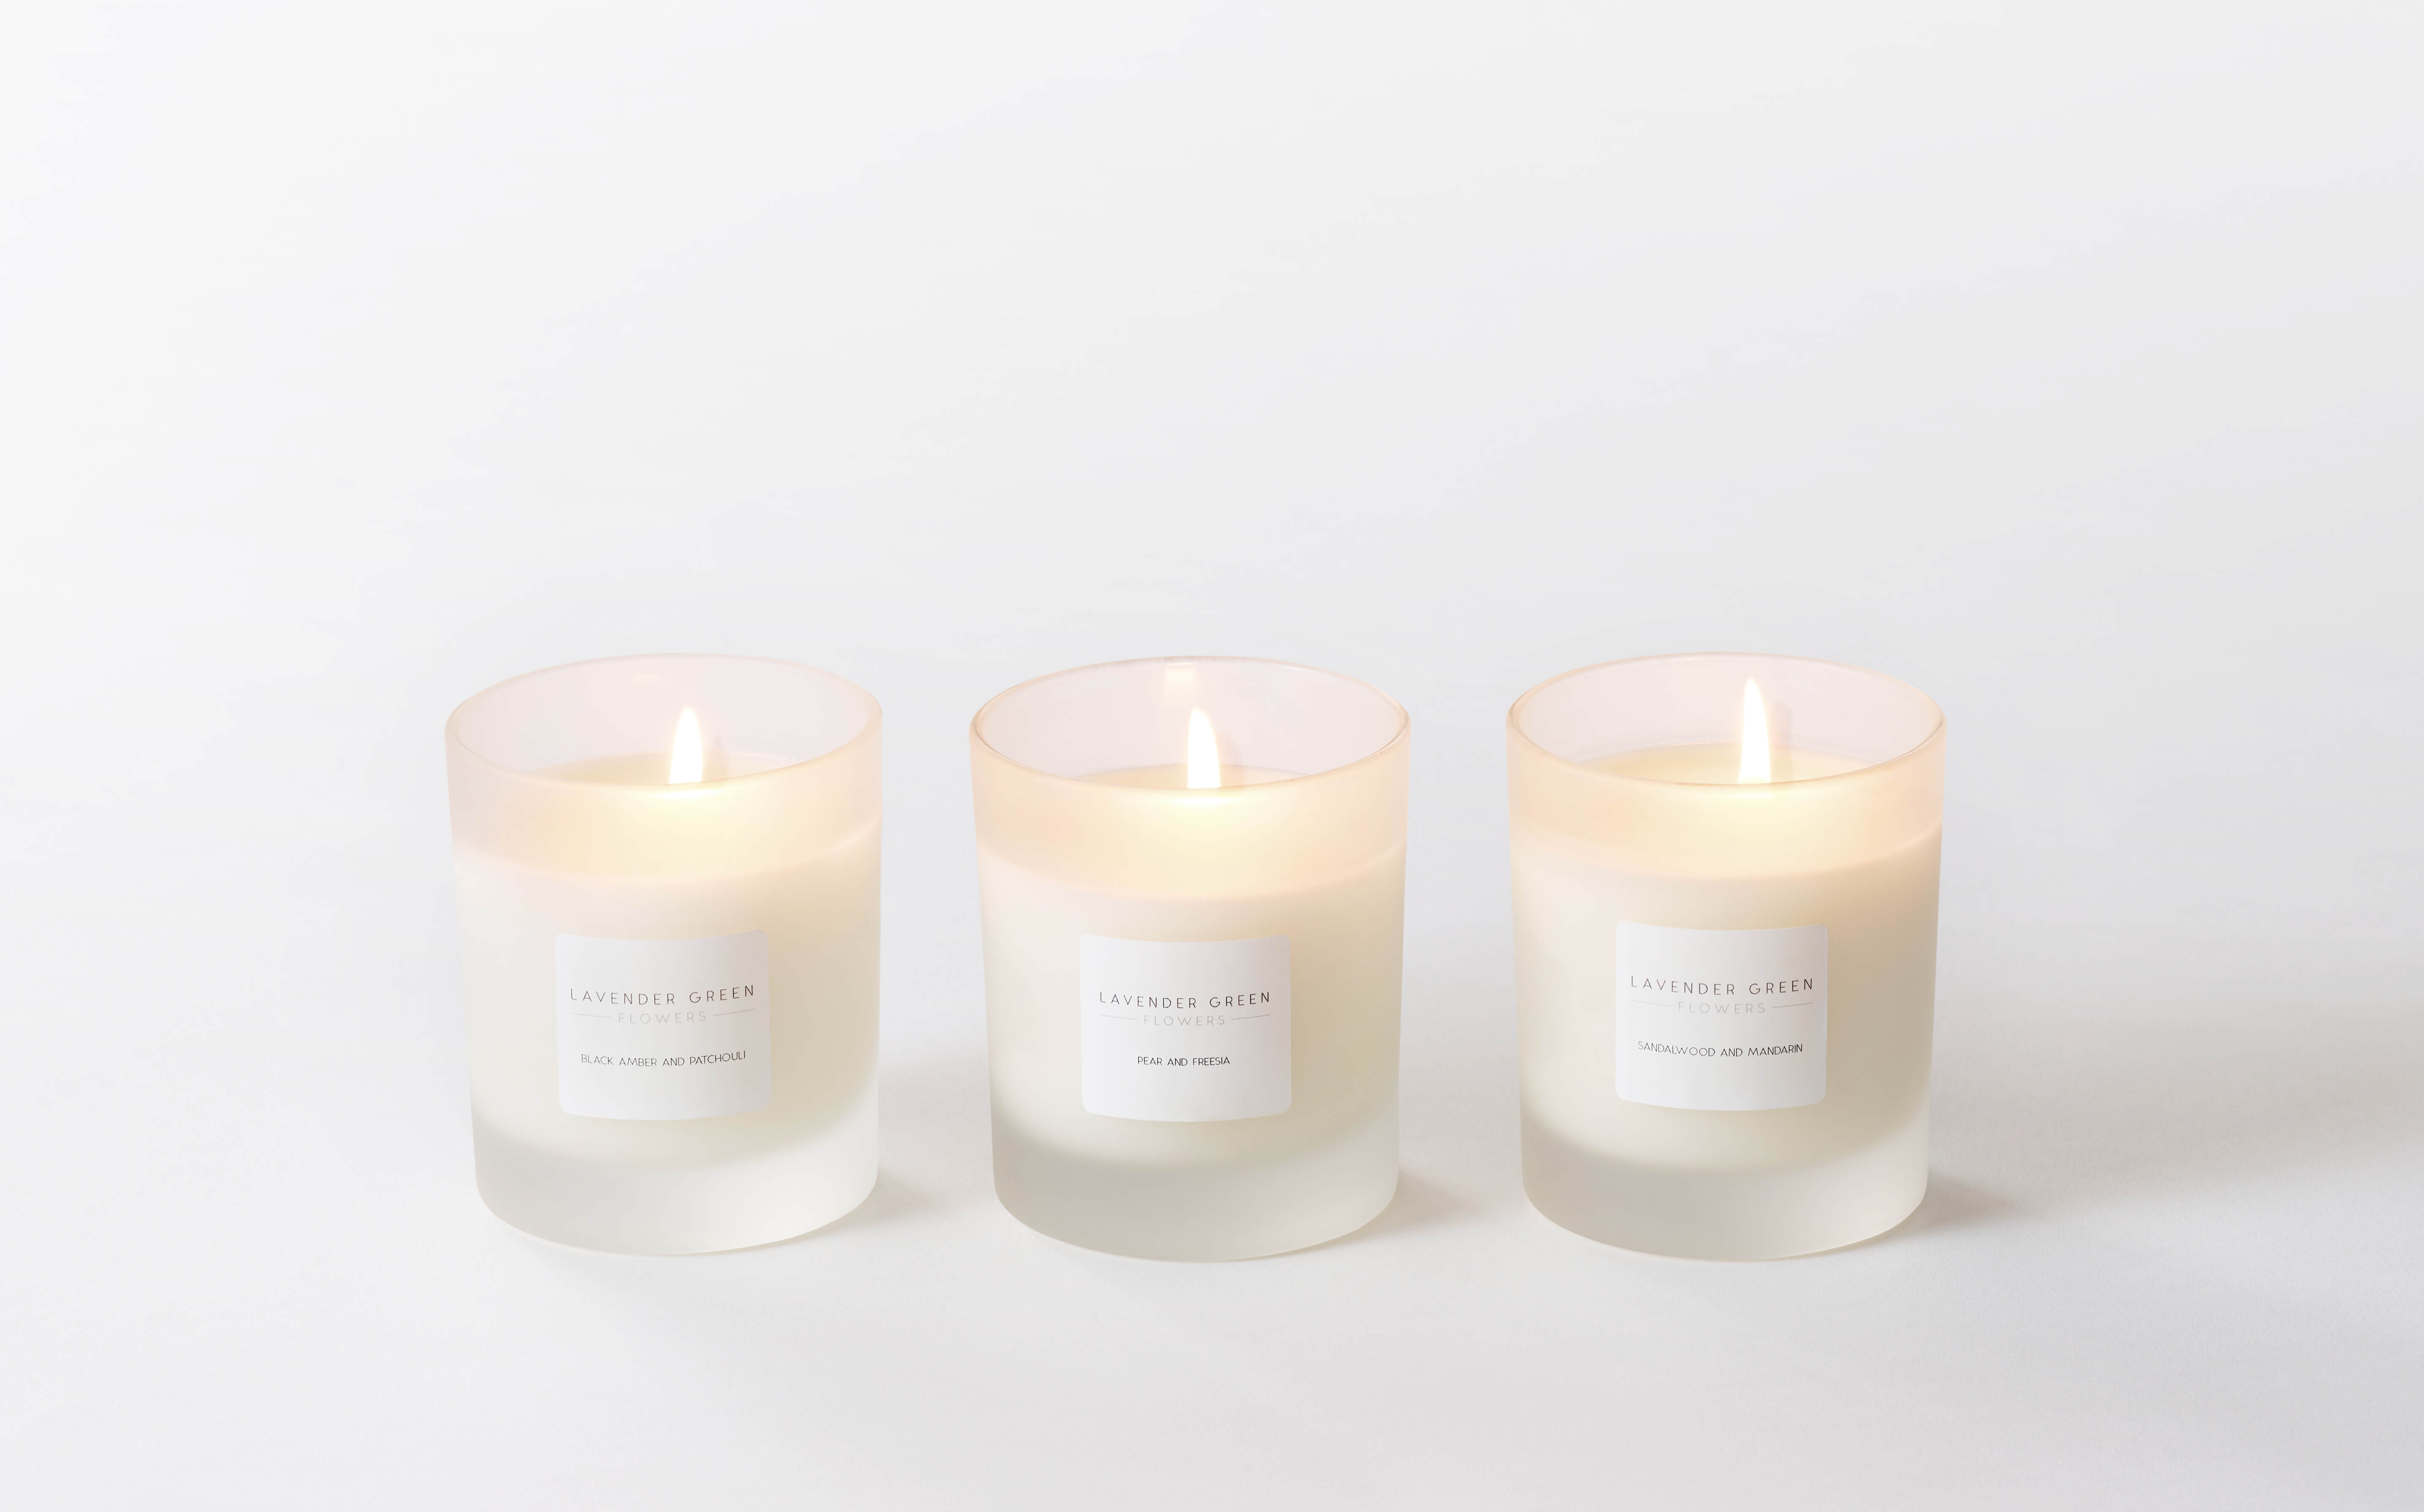 Lavender Green Scented Candles Trio Lavender Green Flowers